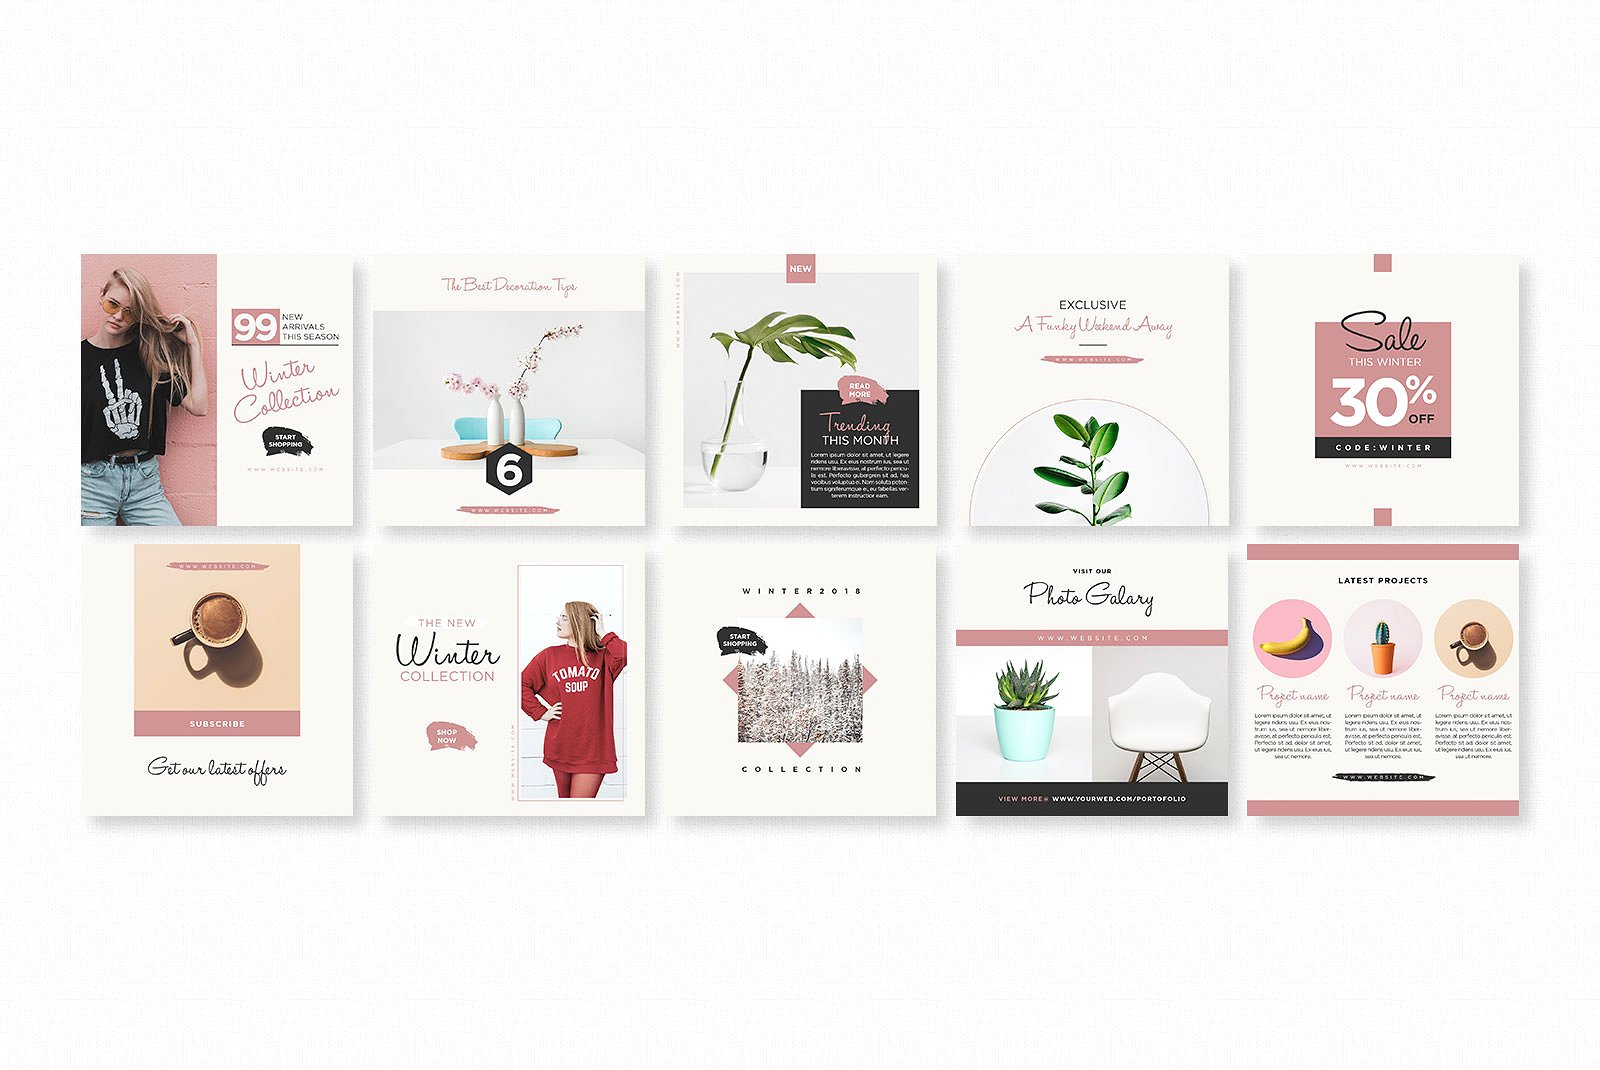 Gravity Instagram Pack Graphic Web Elements By wally6484 - Image 2